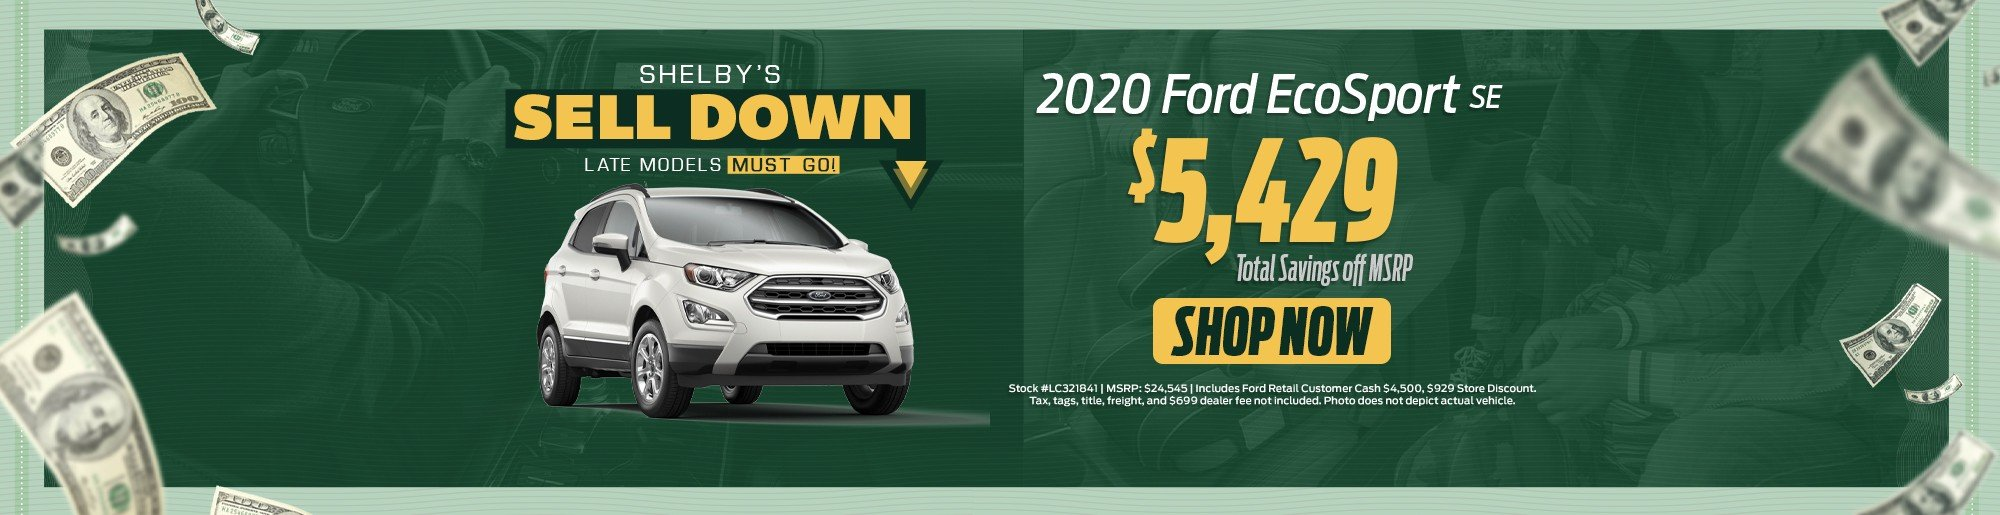 Ford EcoSport deals near me, Key scales FL